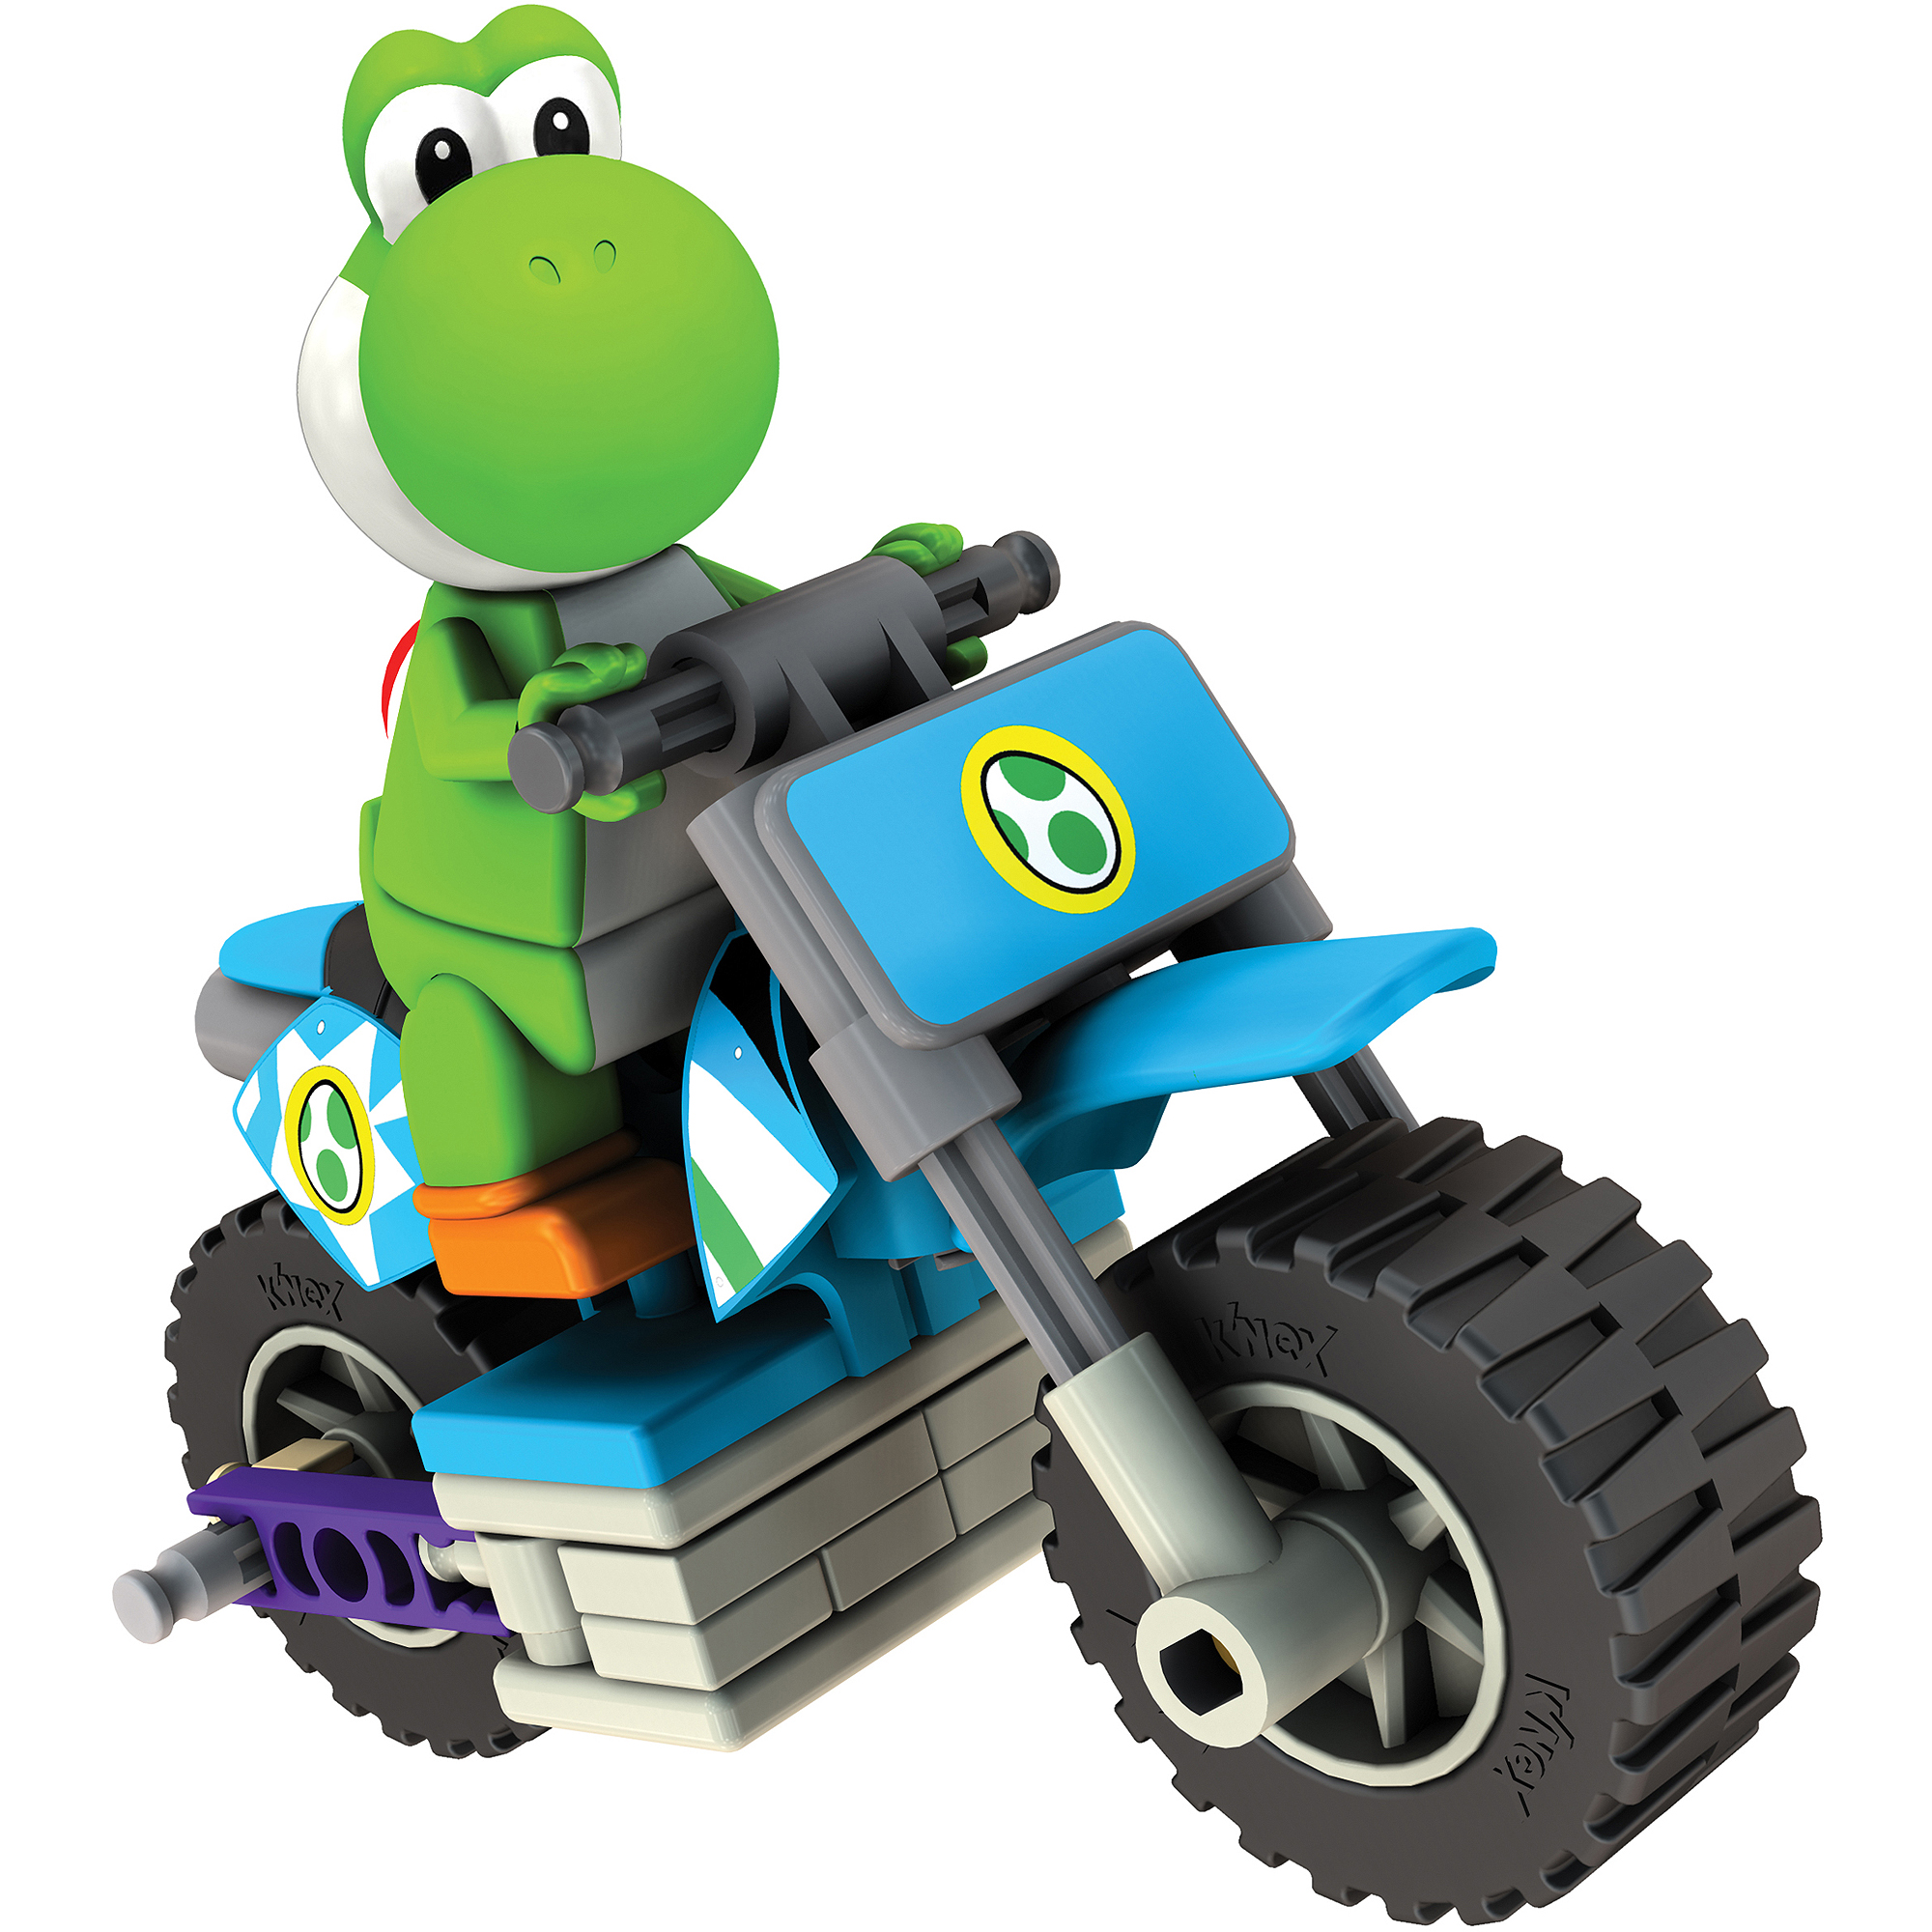 K'NEX Mario Kart Wii Building Set: Yoshi with Standard Bike